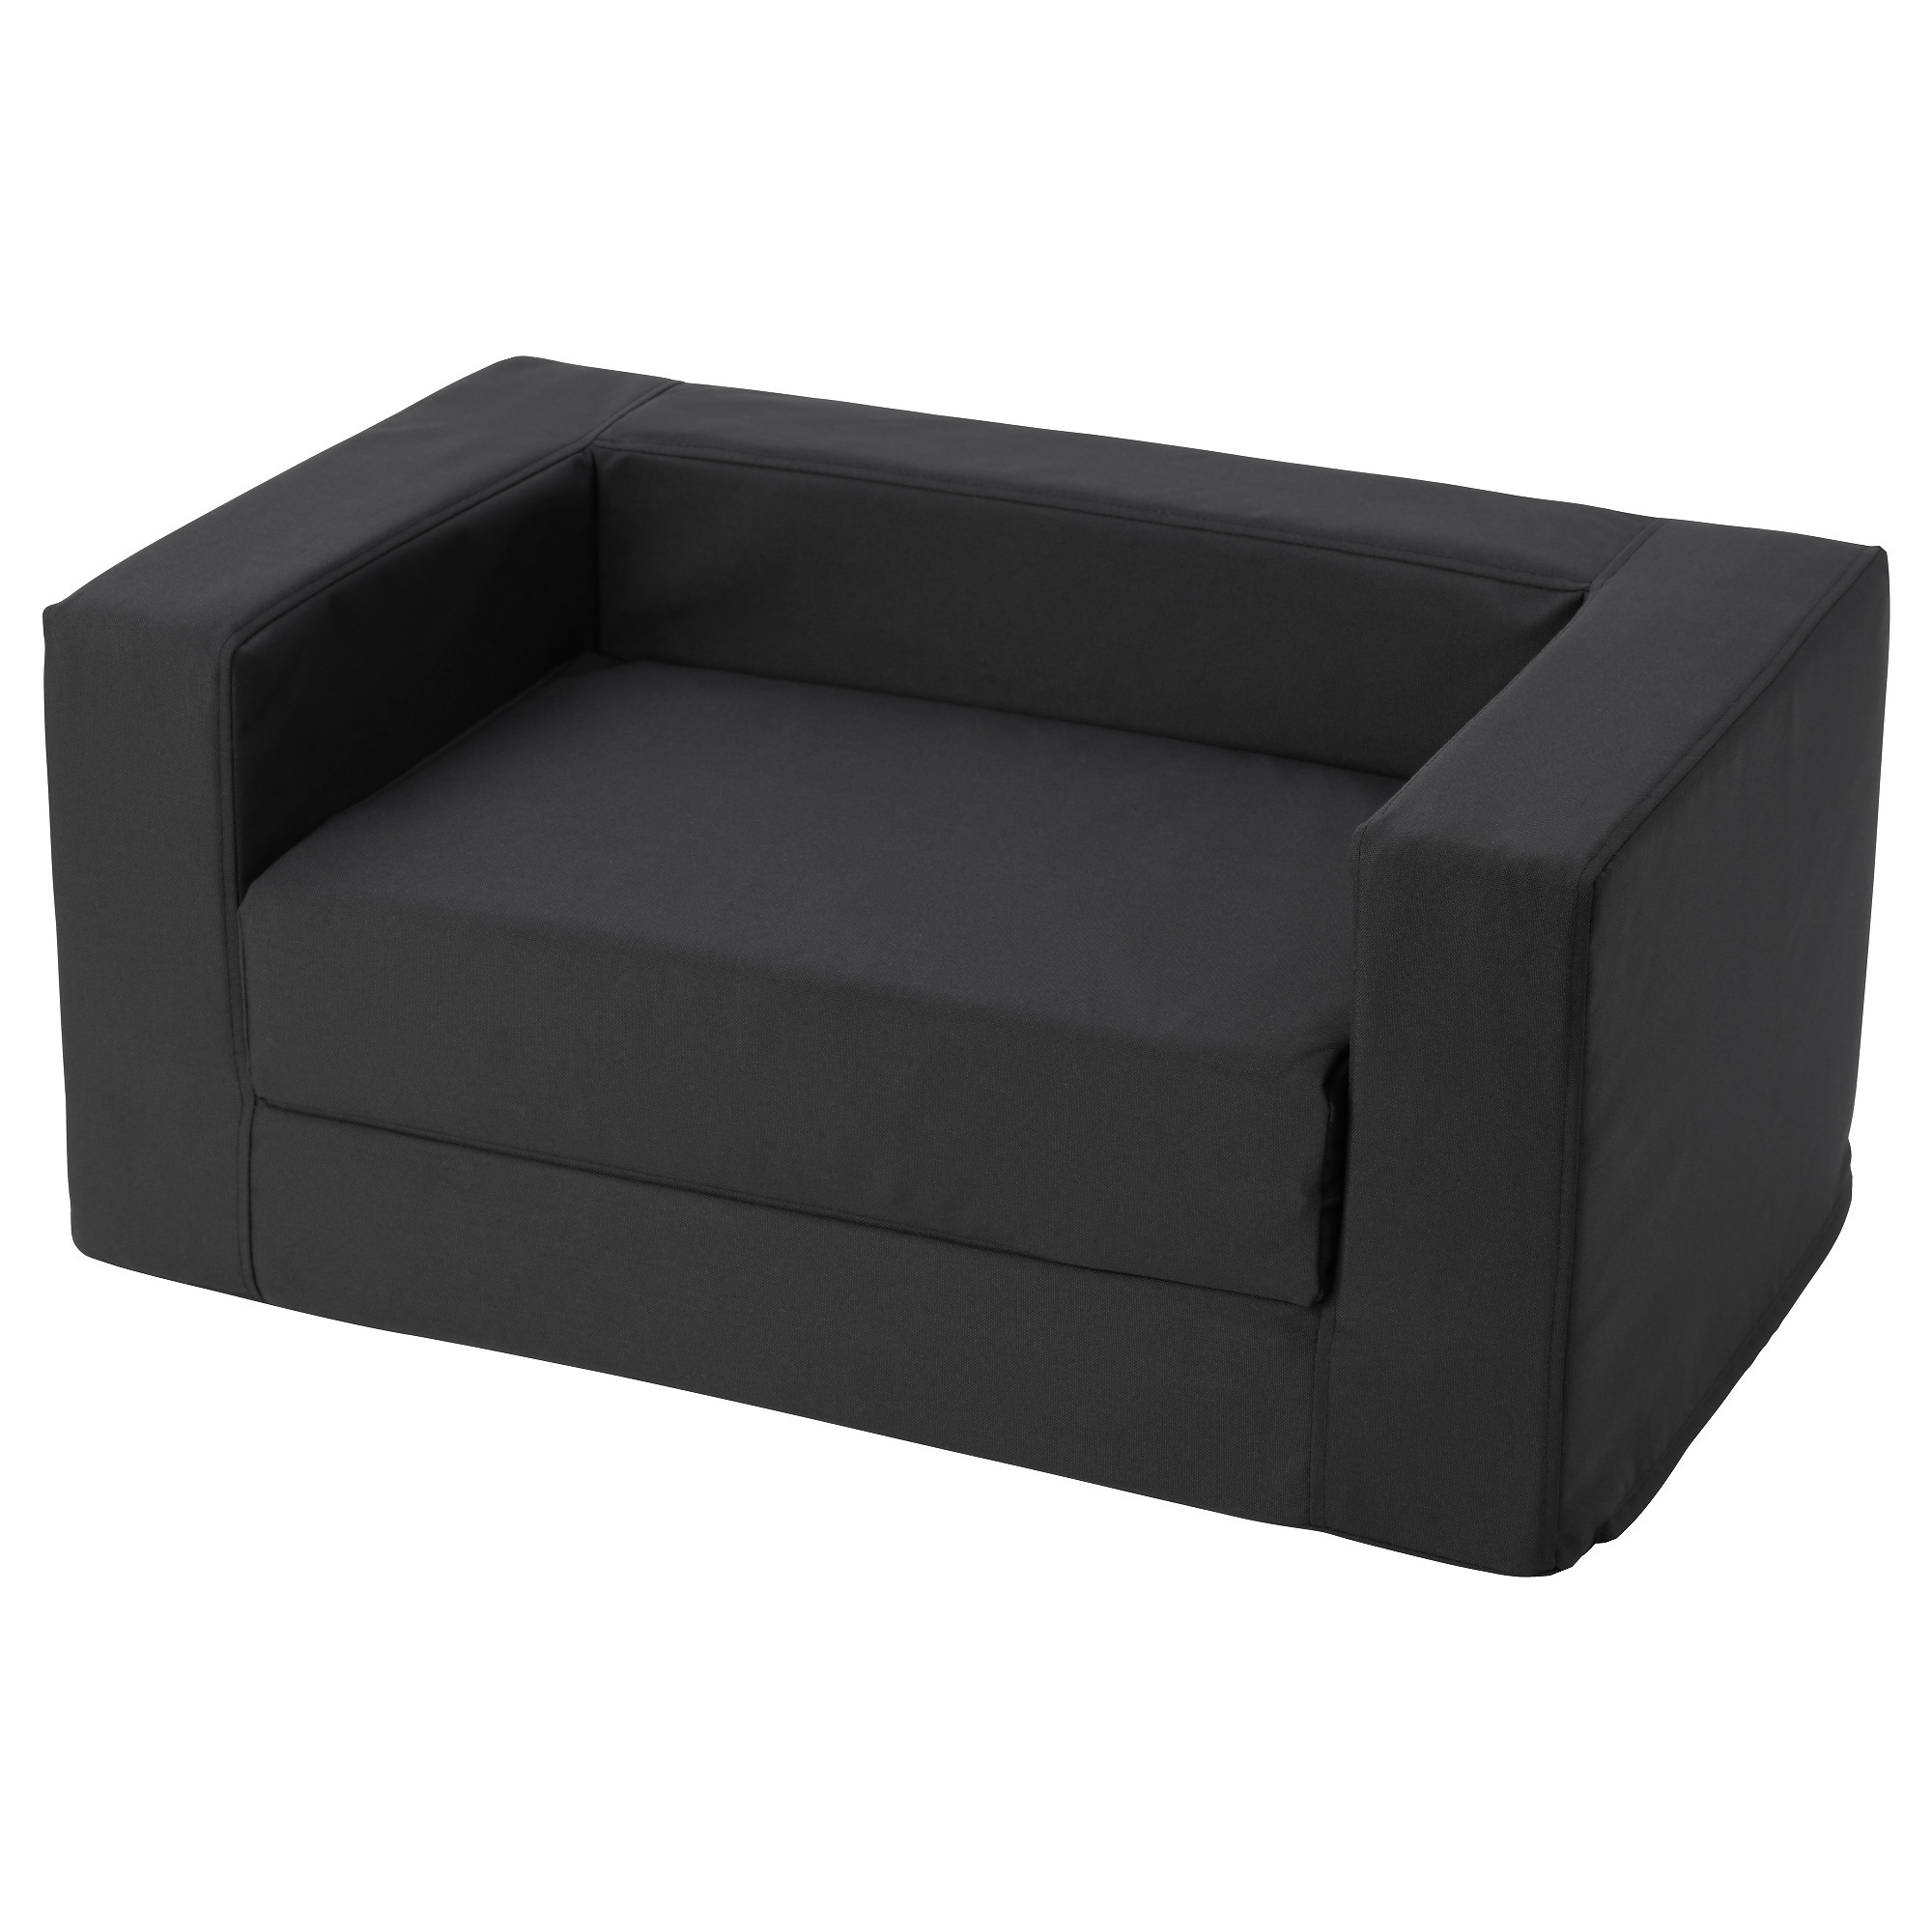 Sofa ikea klippan  LURVIG Cat/dog bed - IKEA